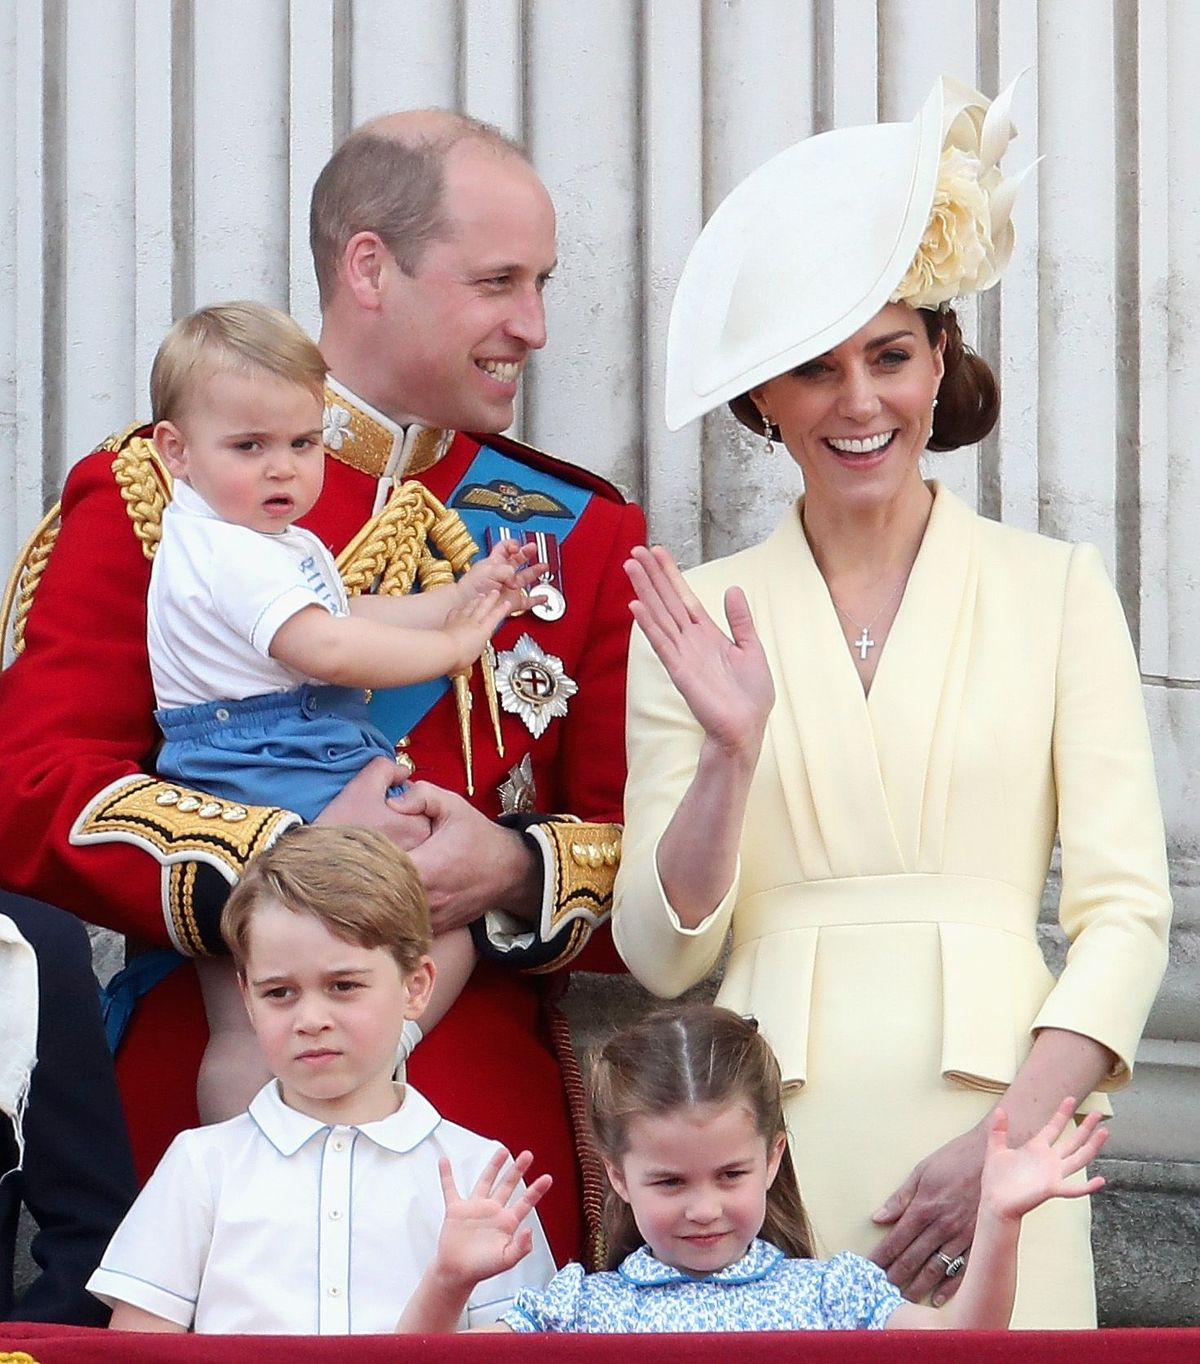 Prince William, Kate Middleton, Prince Louis, Prince George, and Princess Charlotte during Trooping The Colour on June 8, 2019 in London, England. | Photo: Getty Images